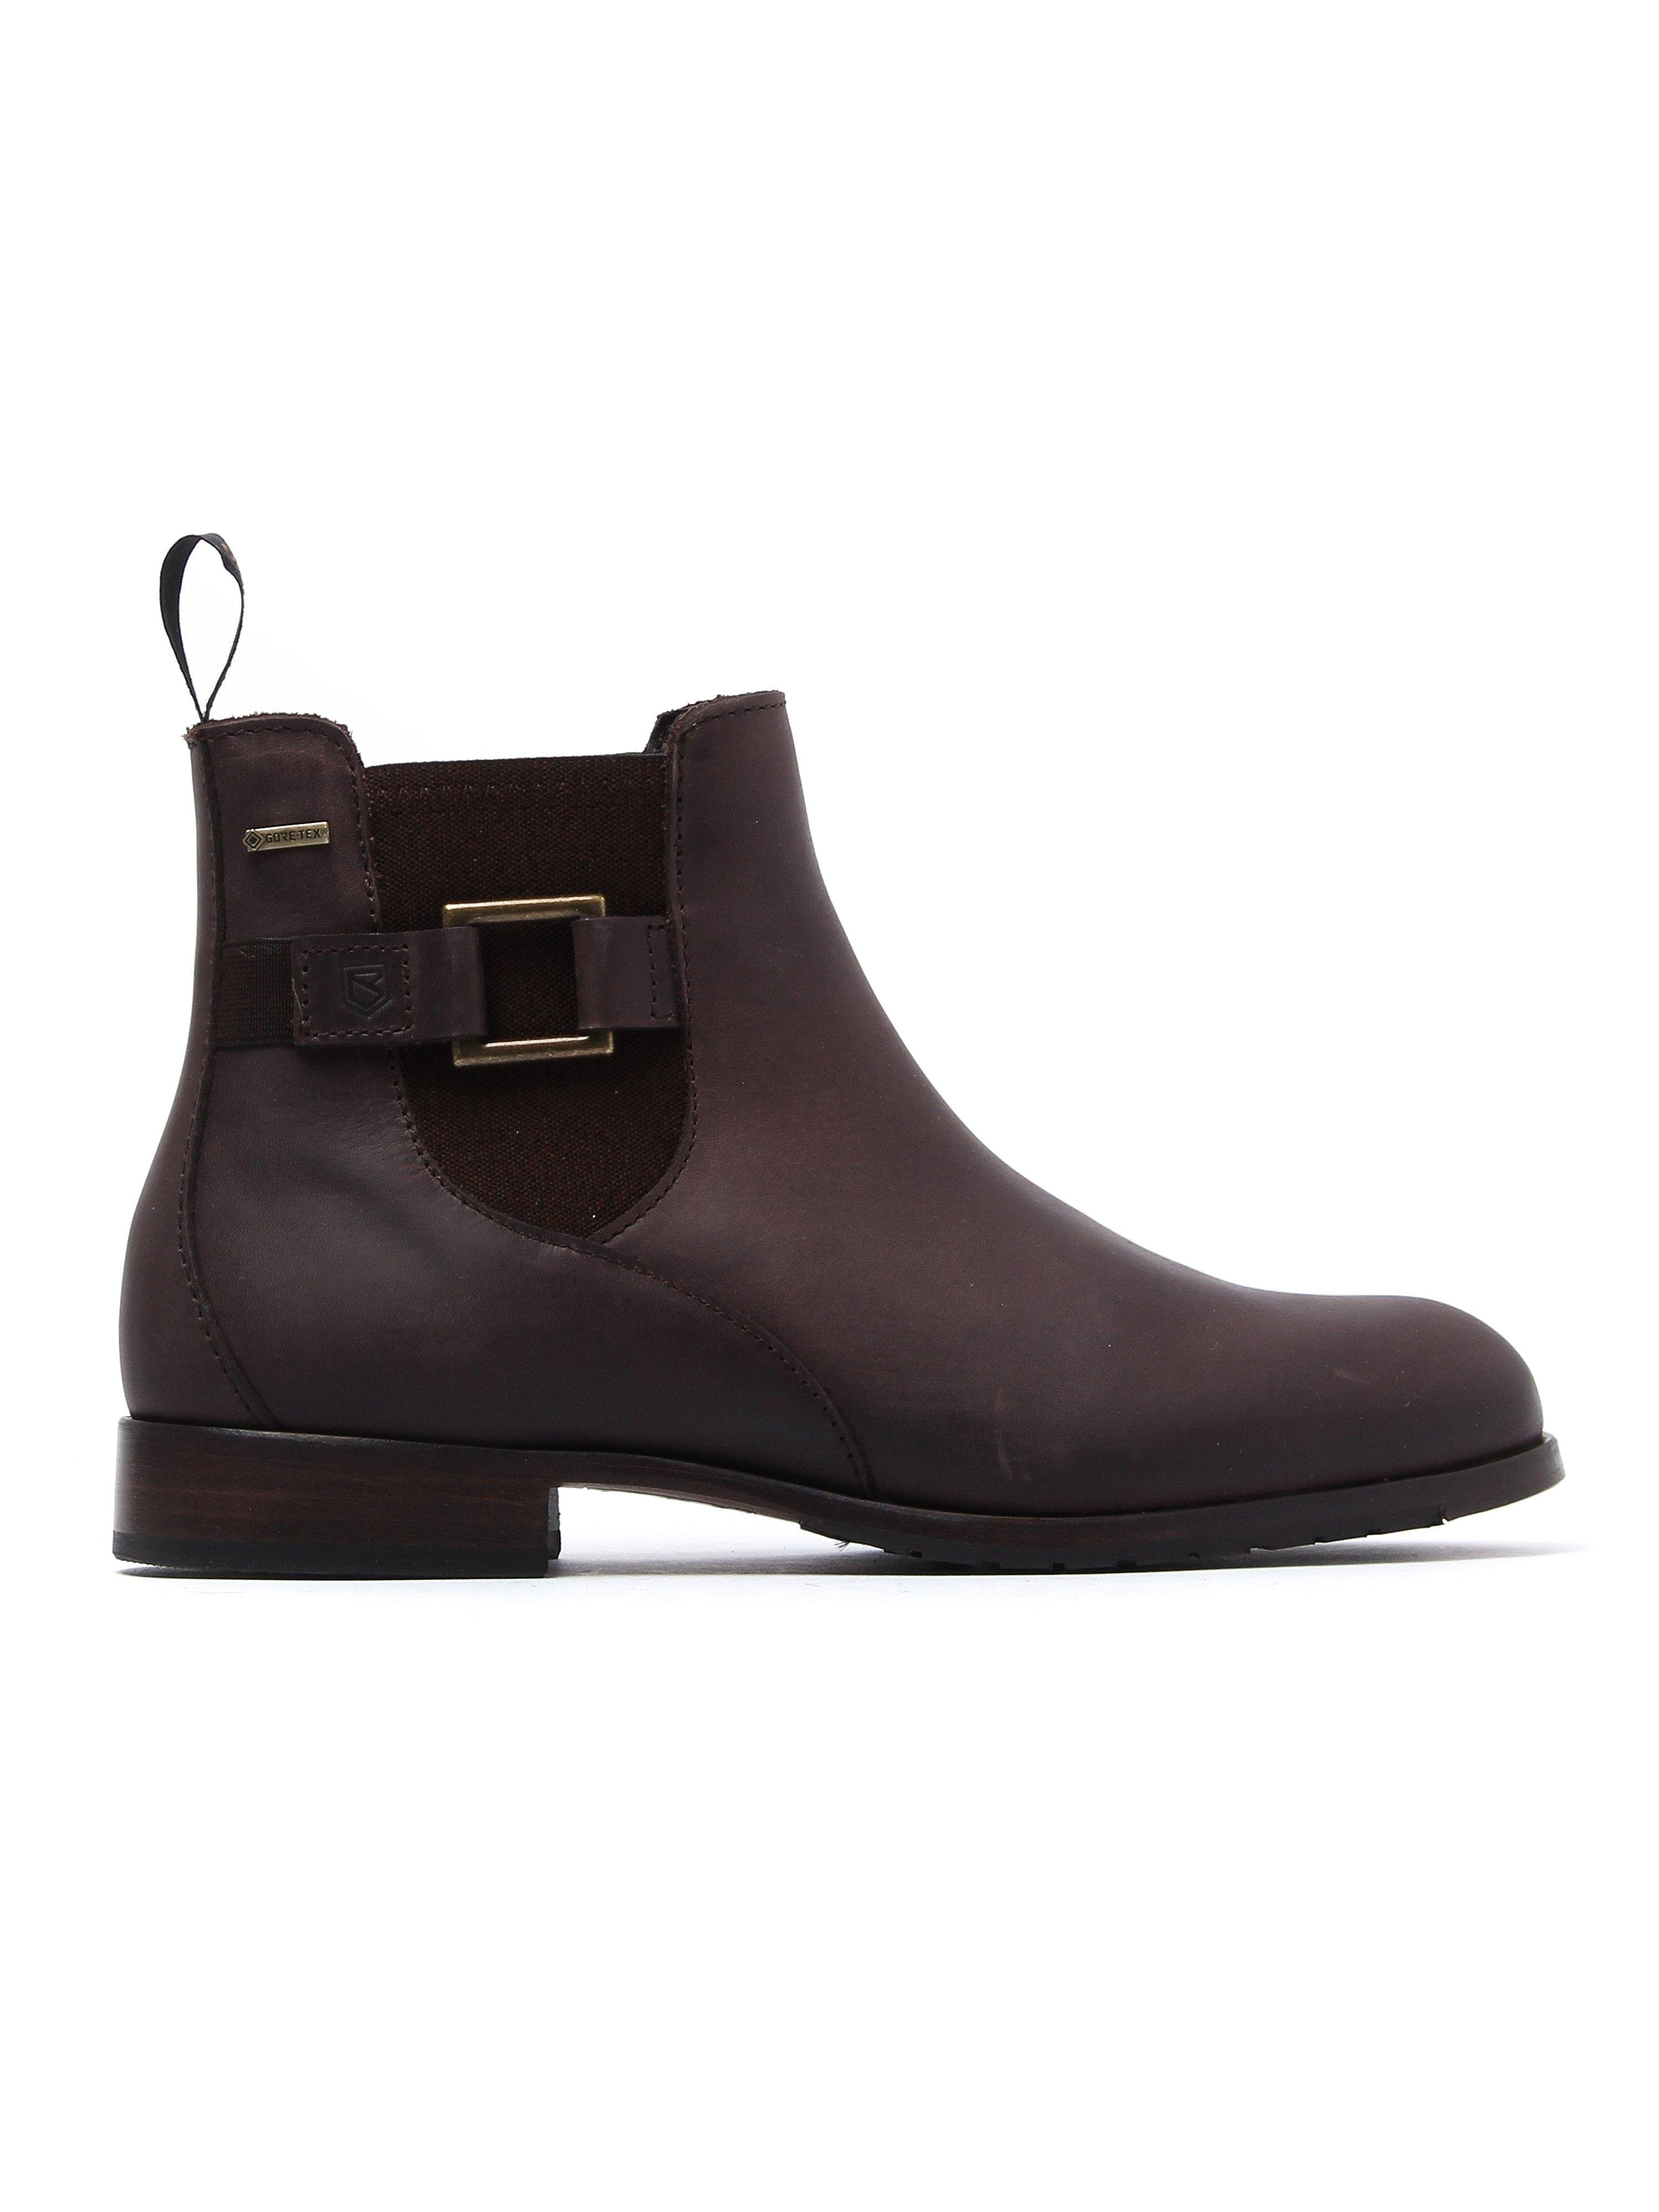 Dubarry Women's Monaghan Chelsea Boots - Old Rum Leather